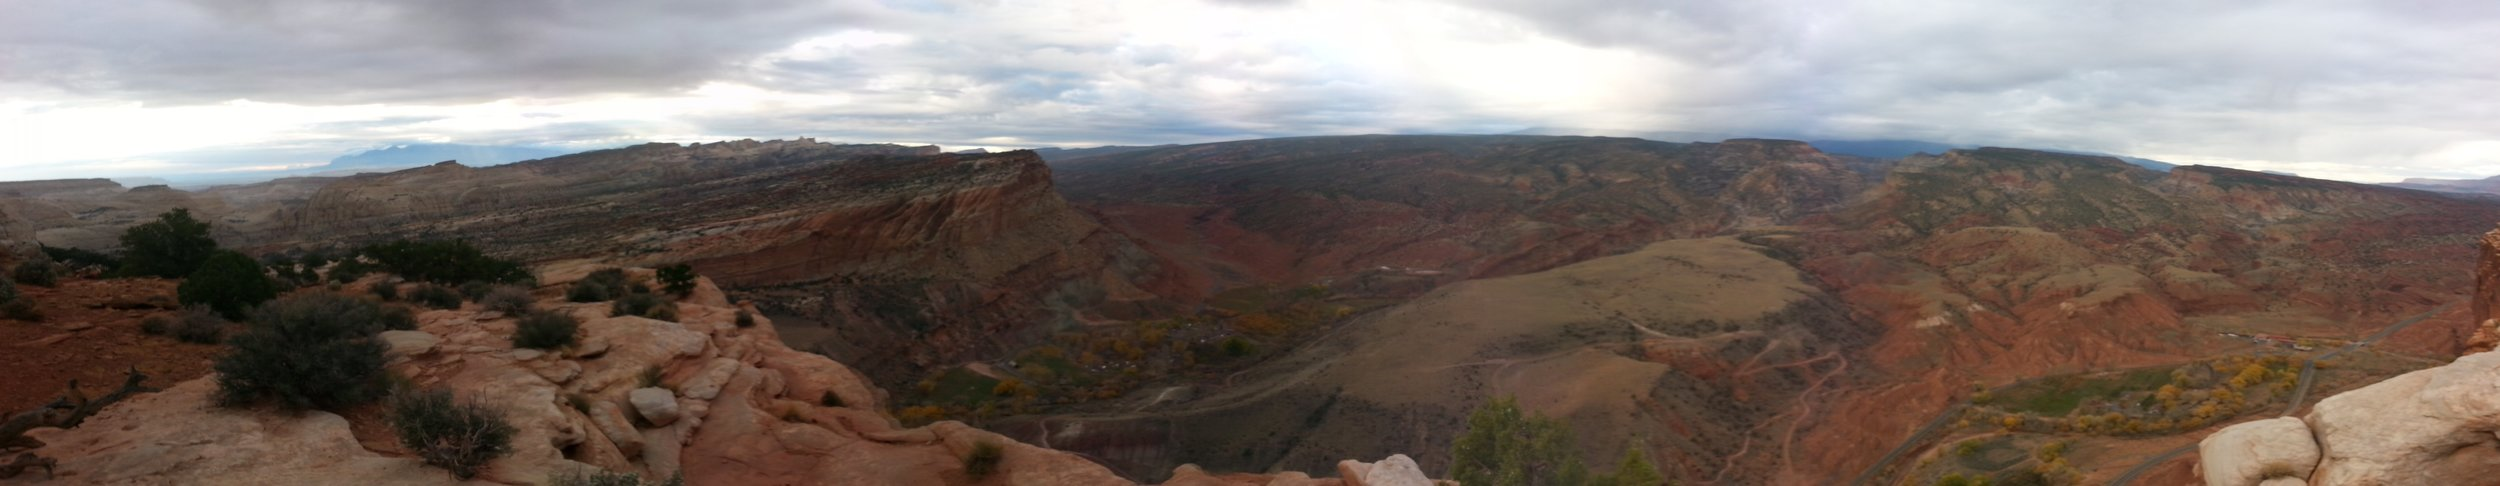 The view atop Chimney Rock!